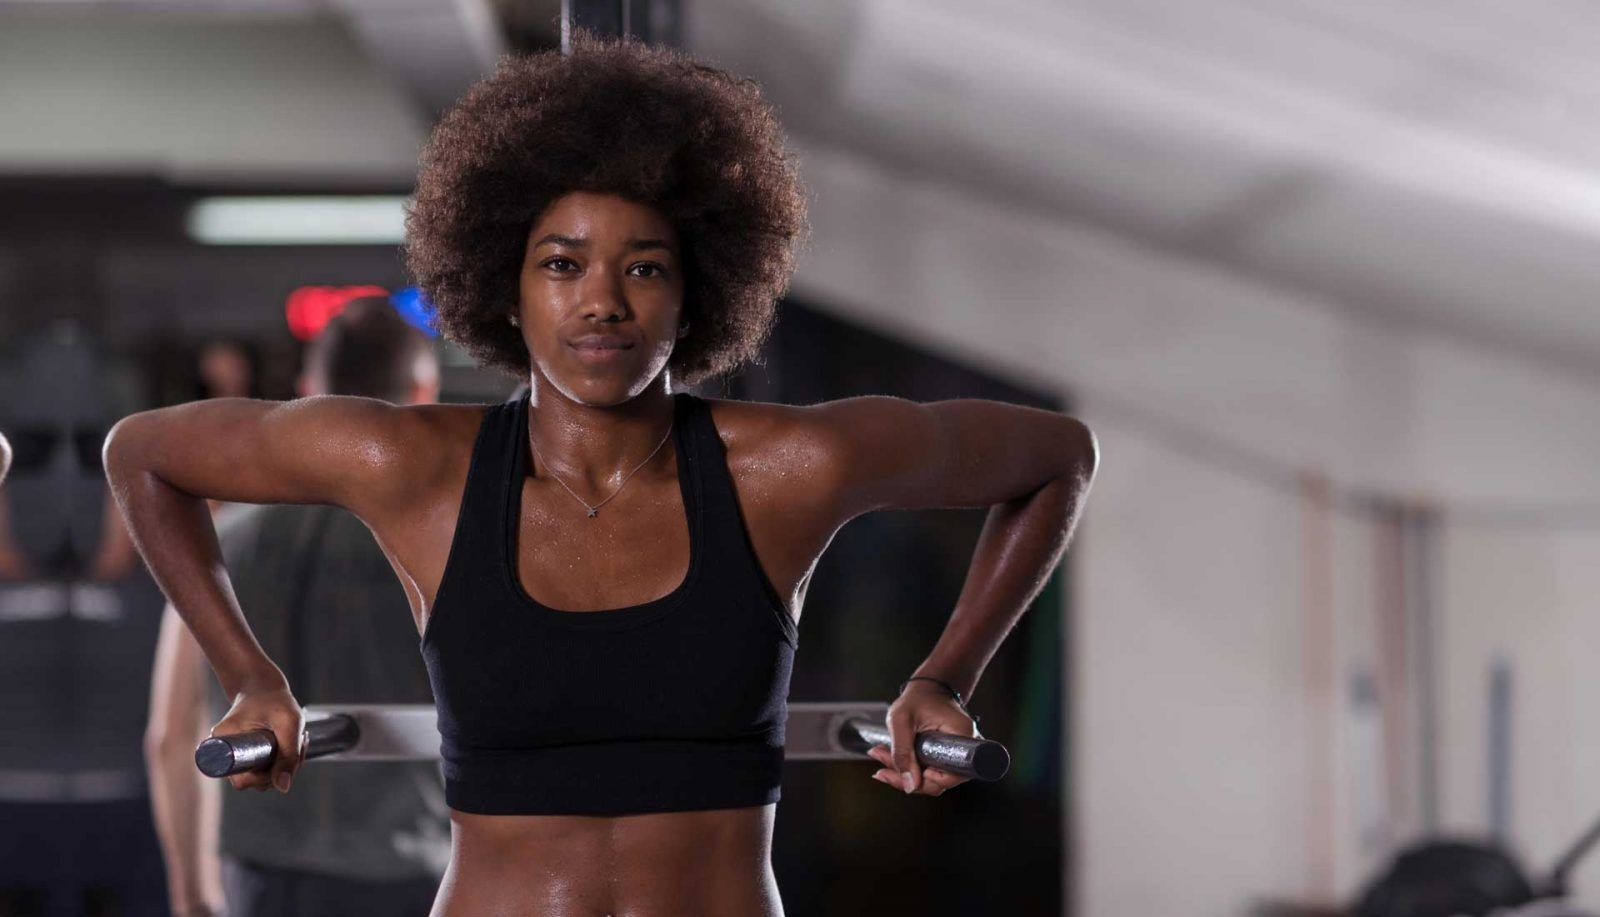 Black woman with natural hair exercising on dip station